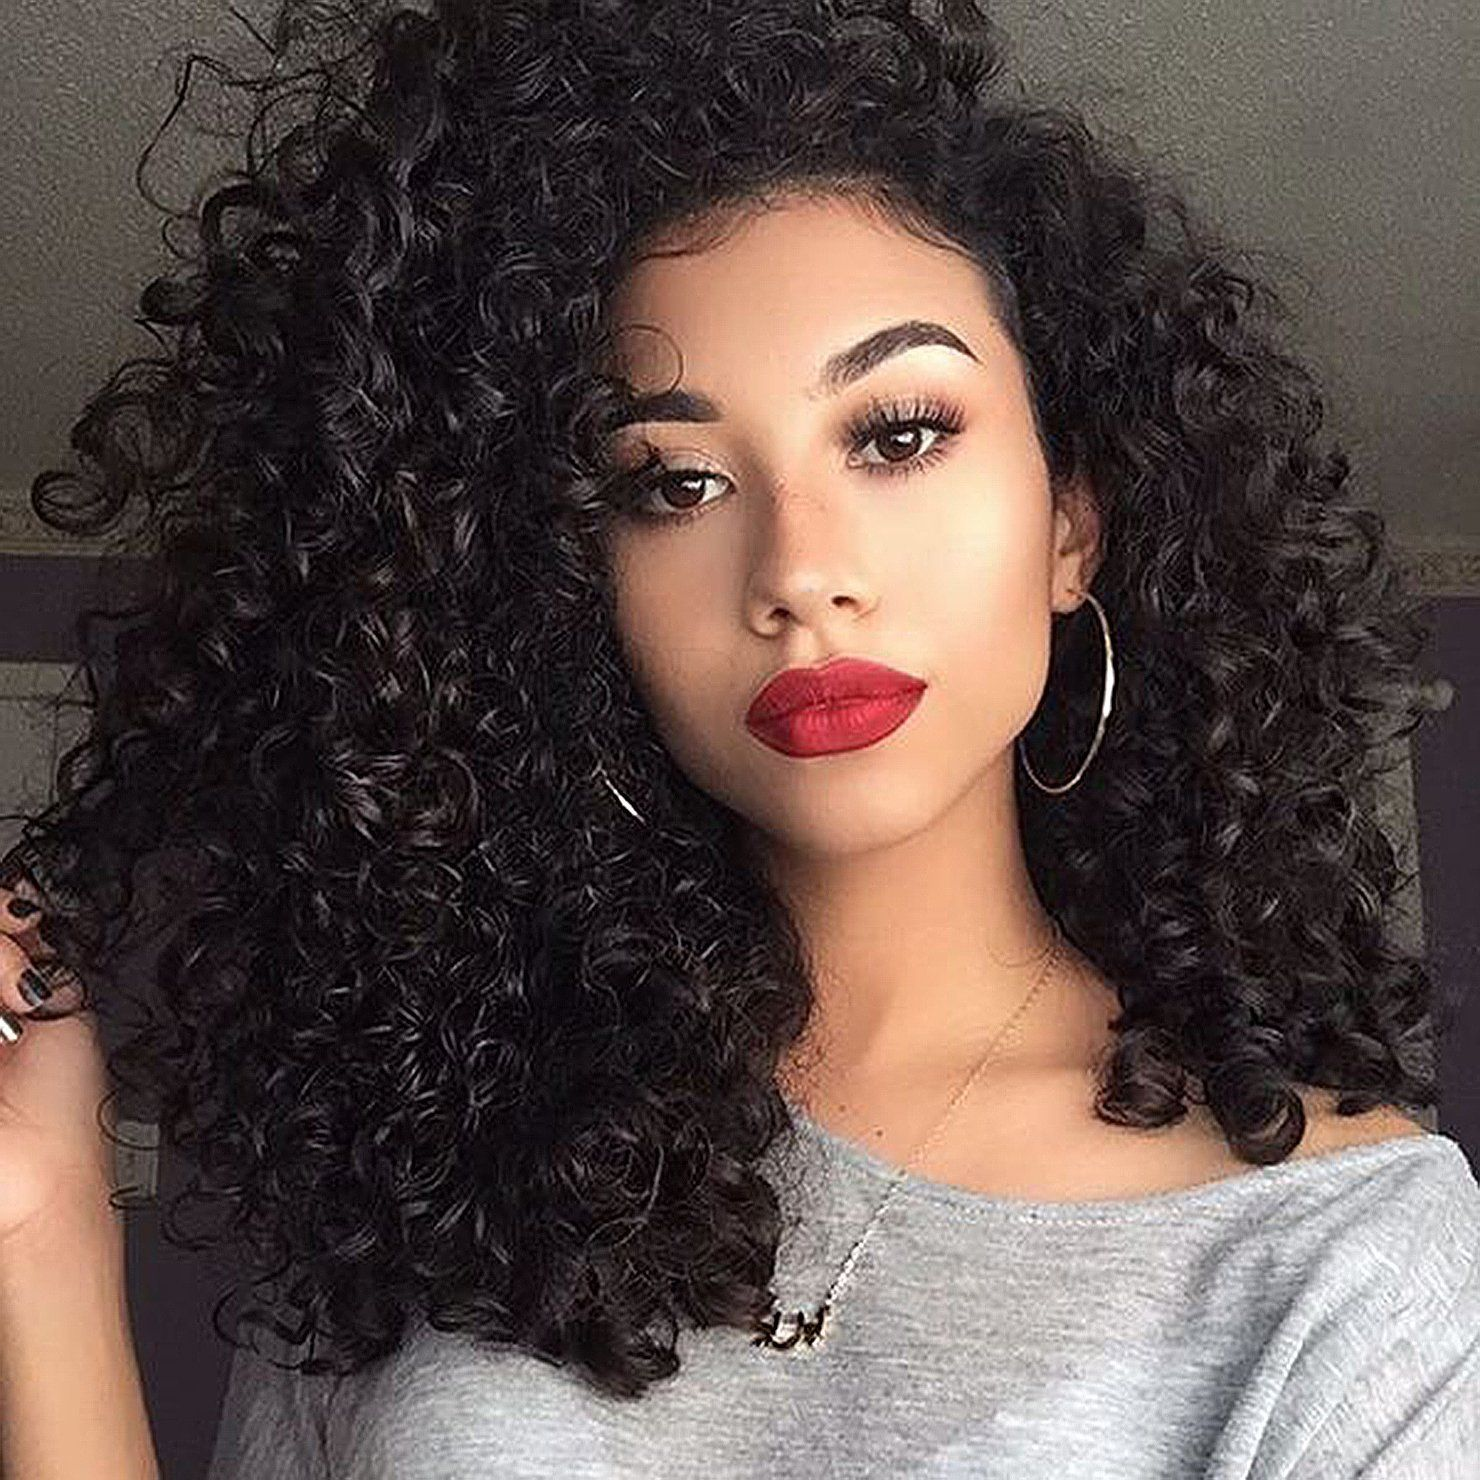 hair Latina curly girls with